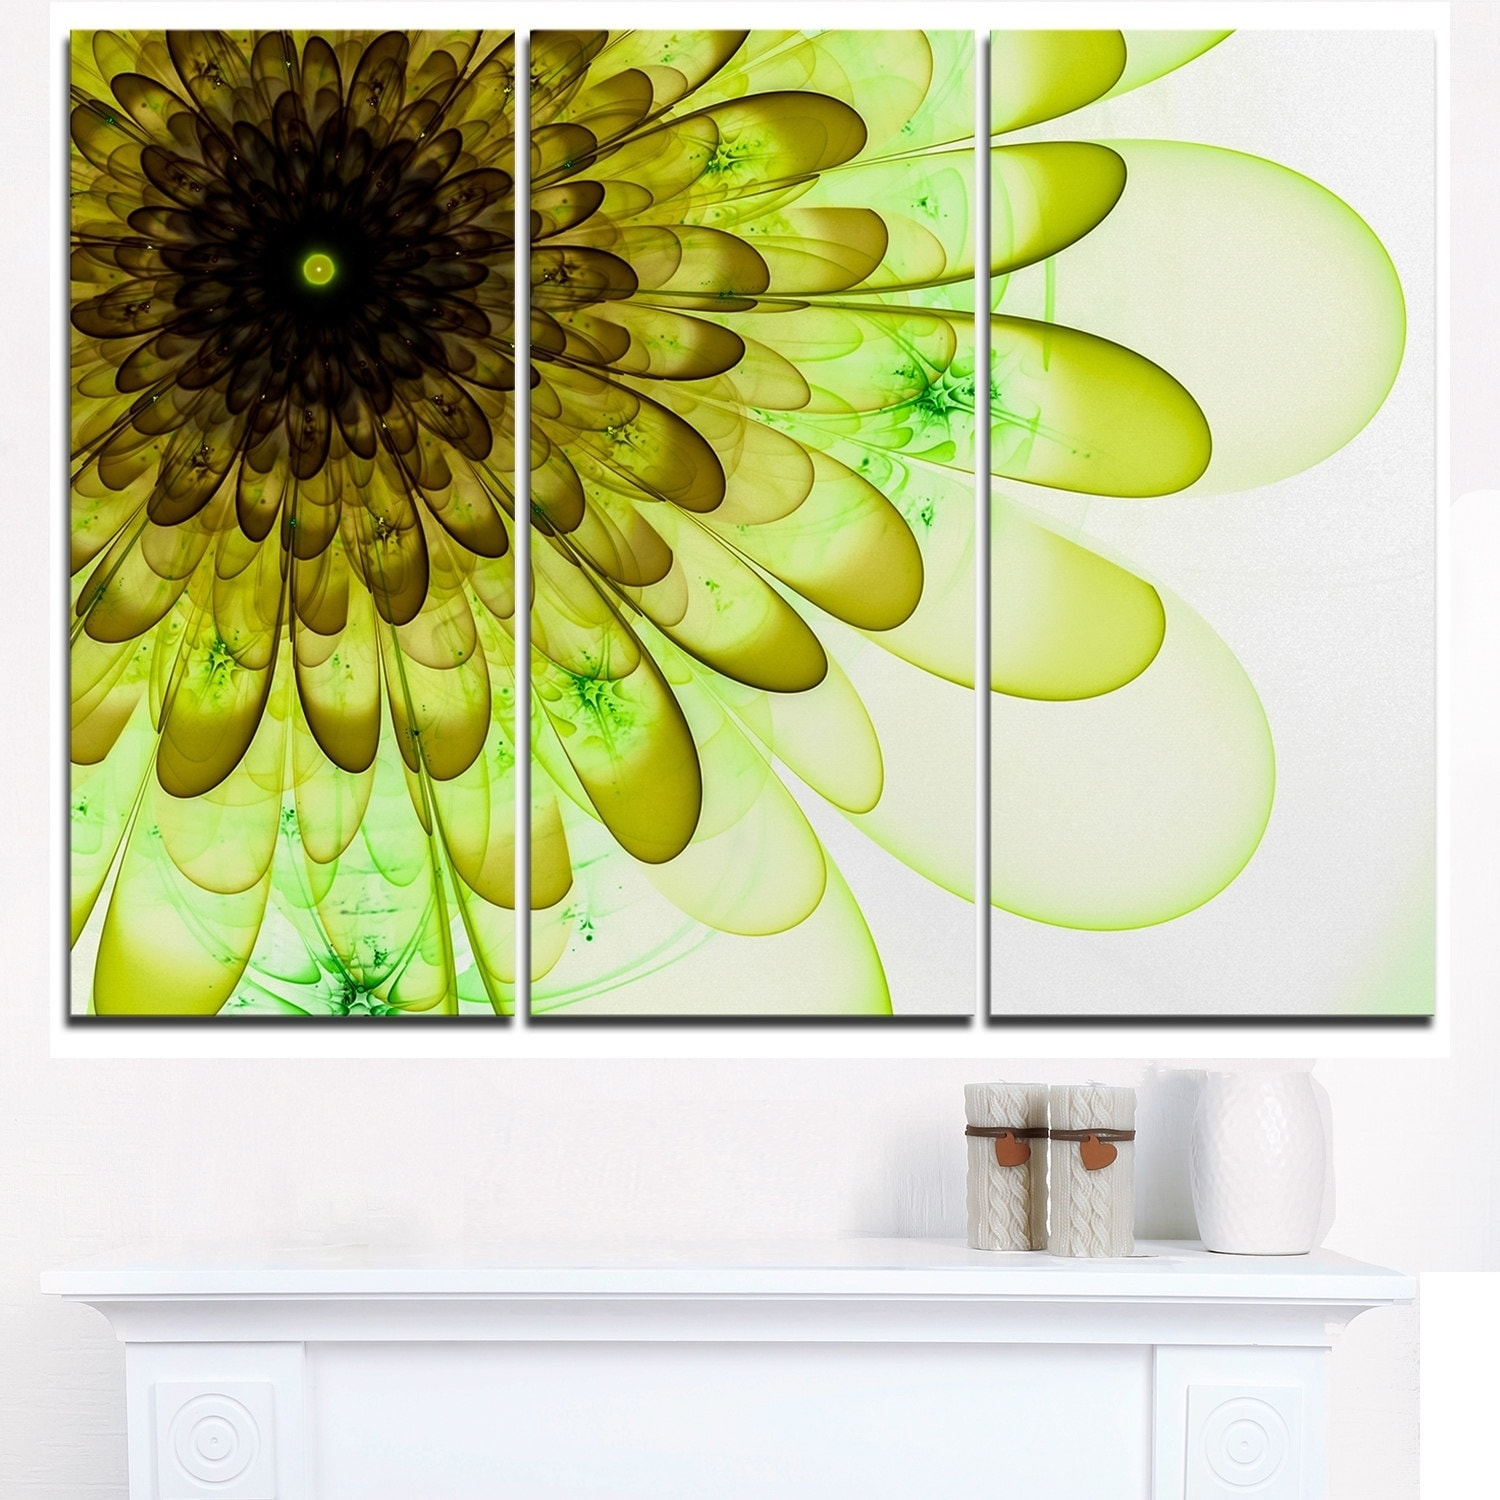 Famous Wall Flower Decorations Sketch - Wall Art Collections ...